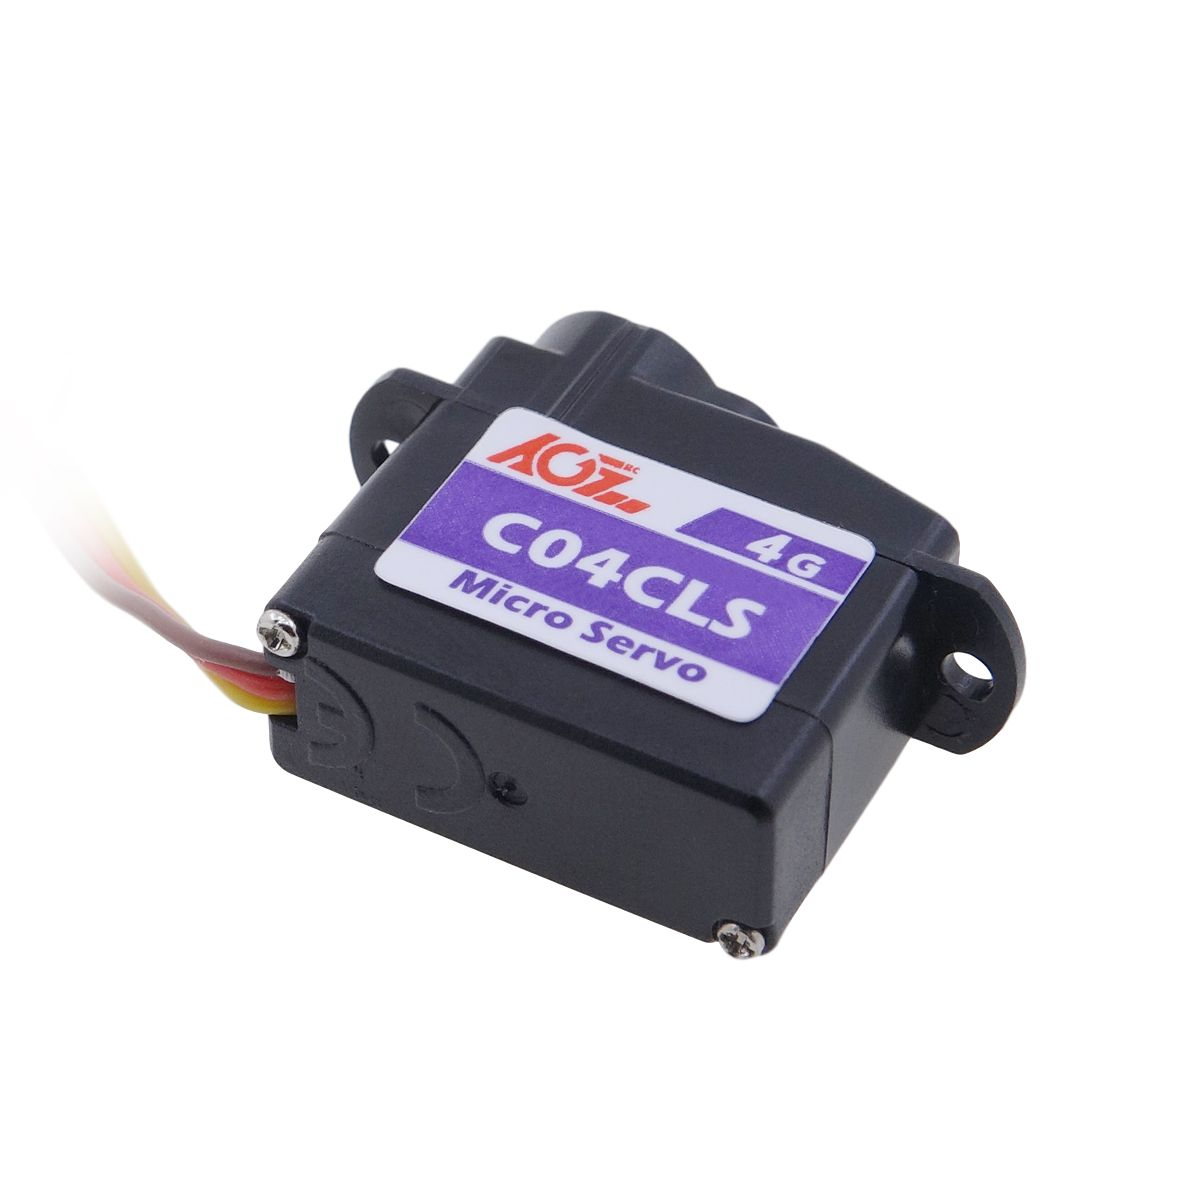 C04CLS 4.3g Light Weight Coreless Mini Micro Digital Servo for RC plane helicopter Boat